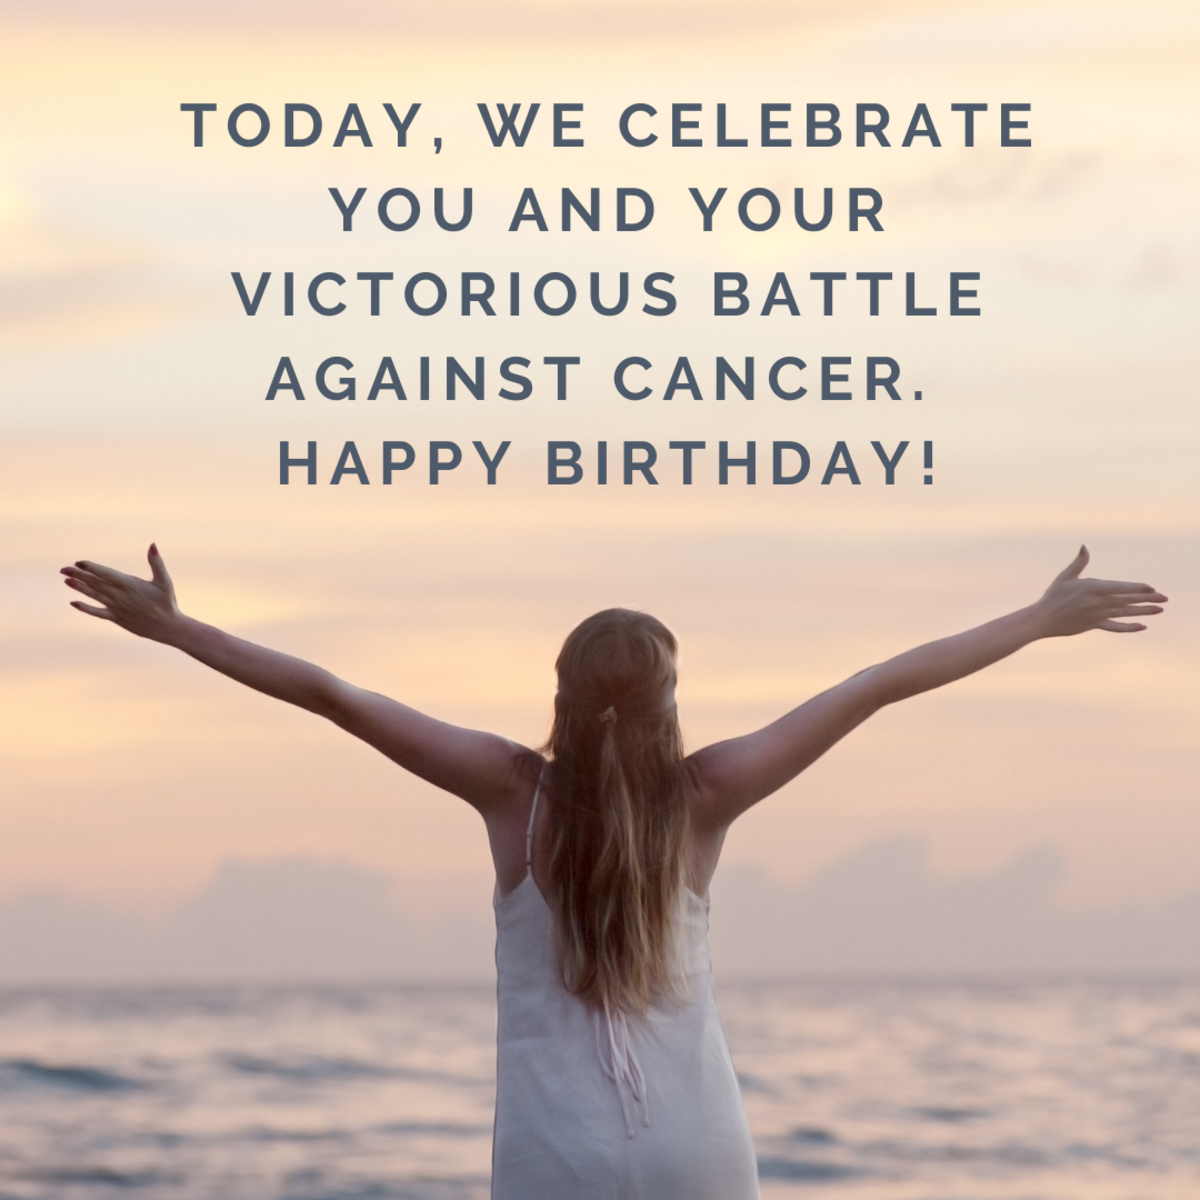 The first birthday after winning the battle against cancer is a wonderful opportunity to celebrate the victory of defeating this terrible disease.